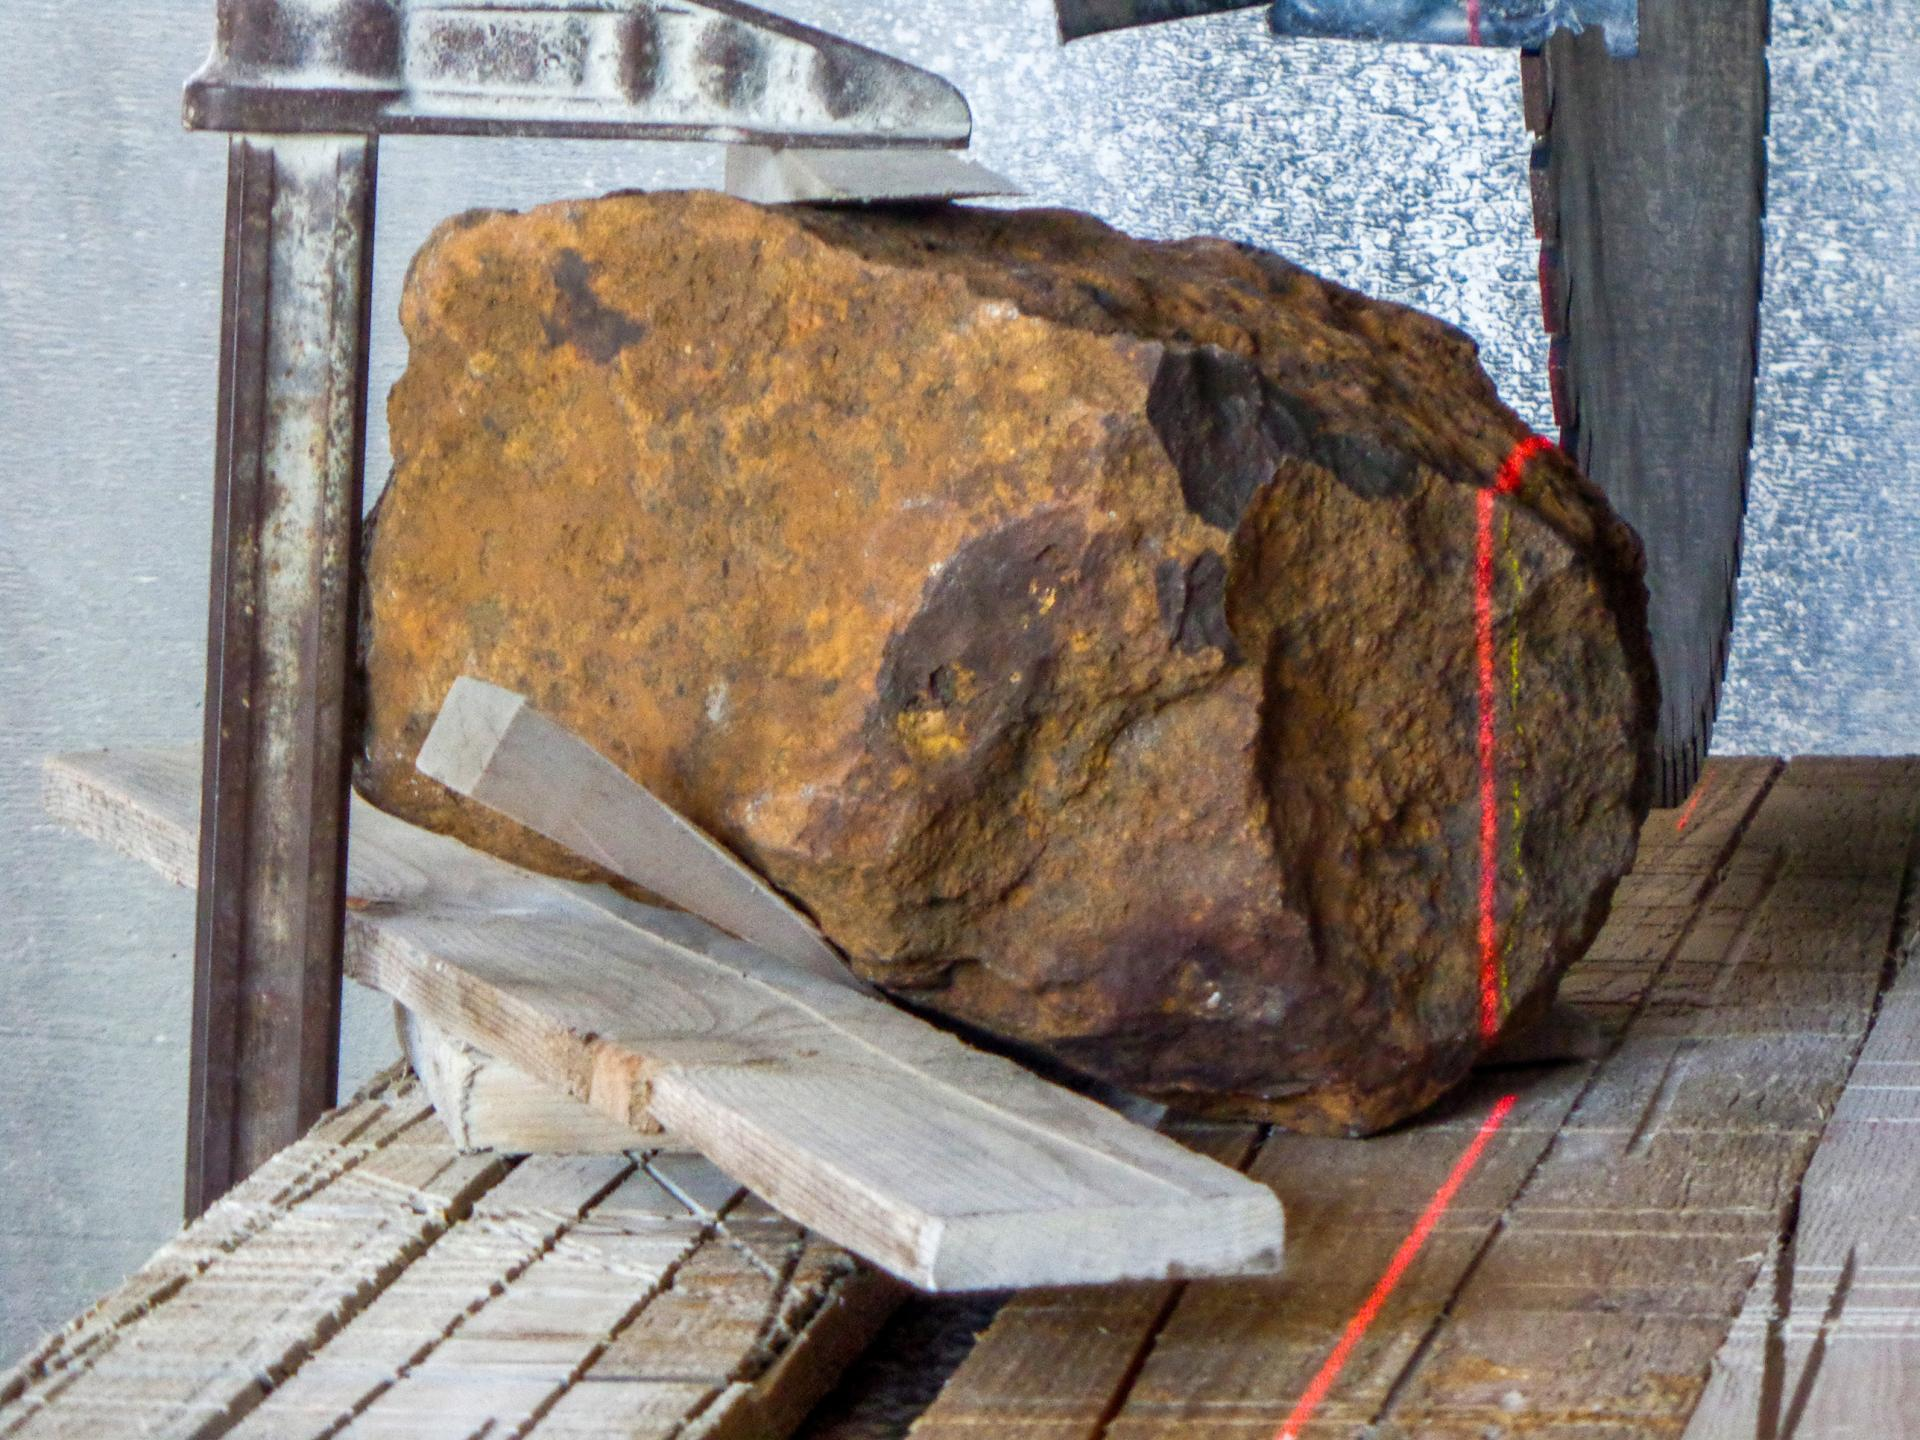 Laser guided stone saw – the opening of 'Blaubeuren'